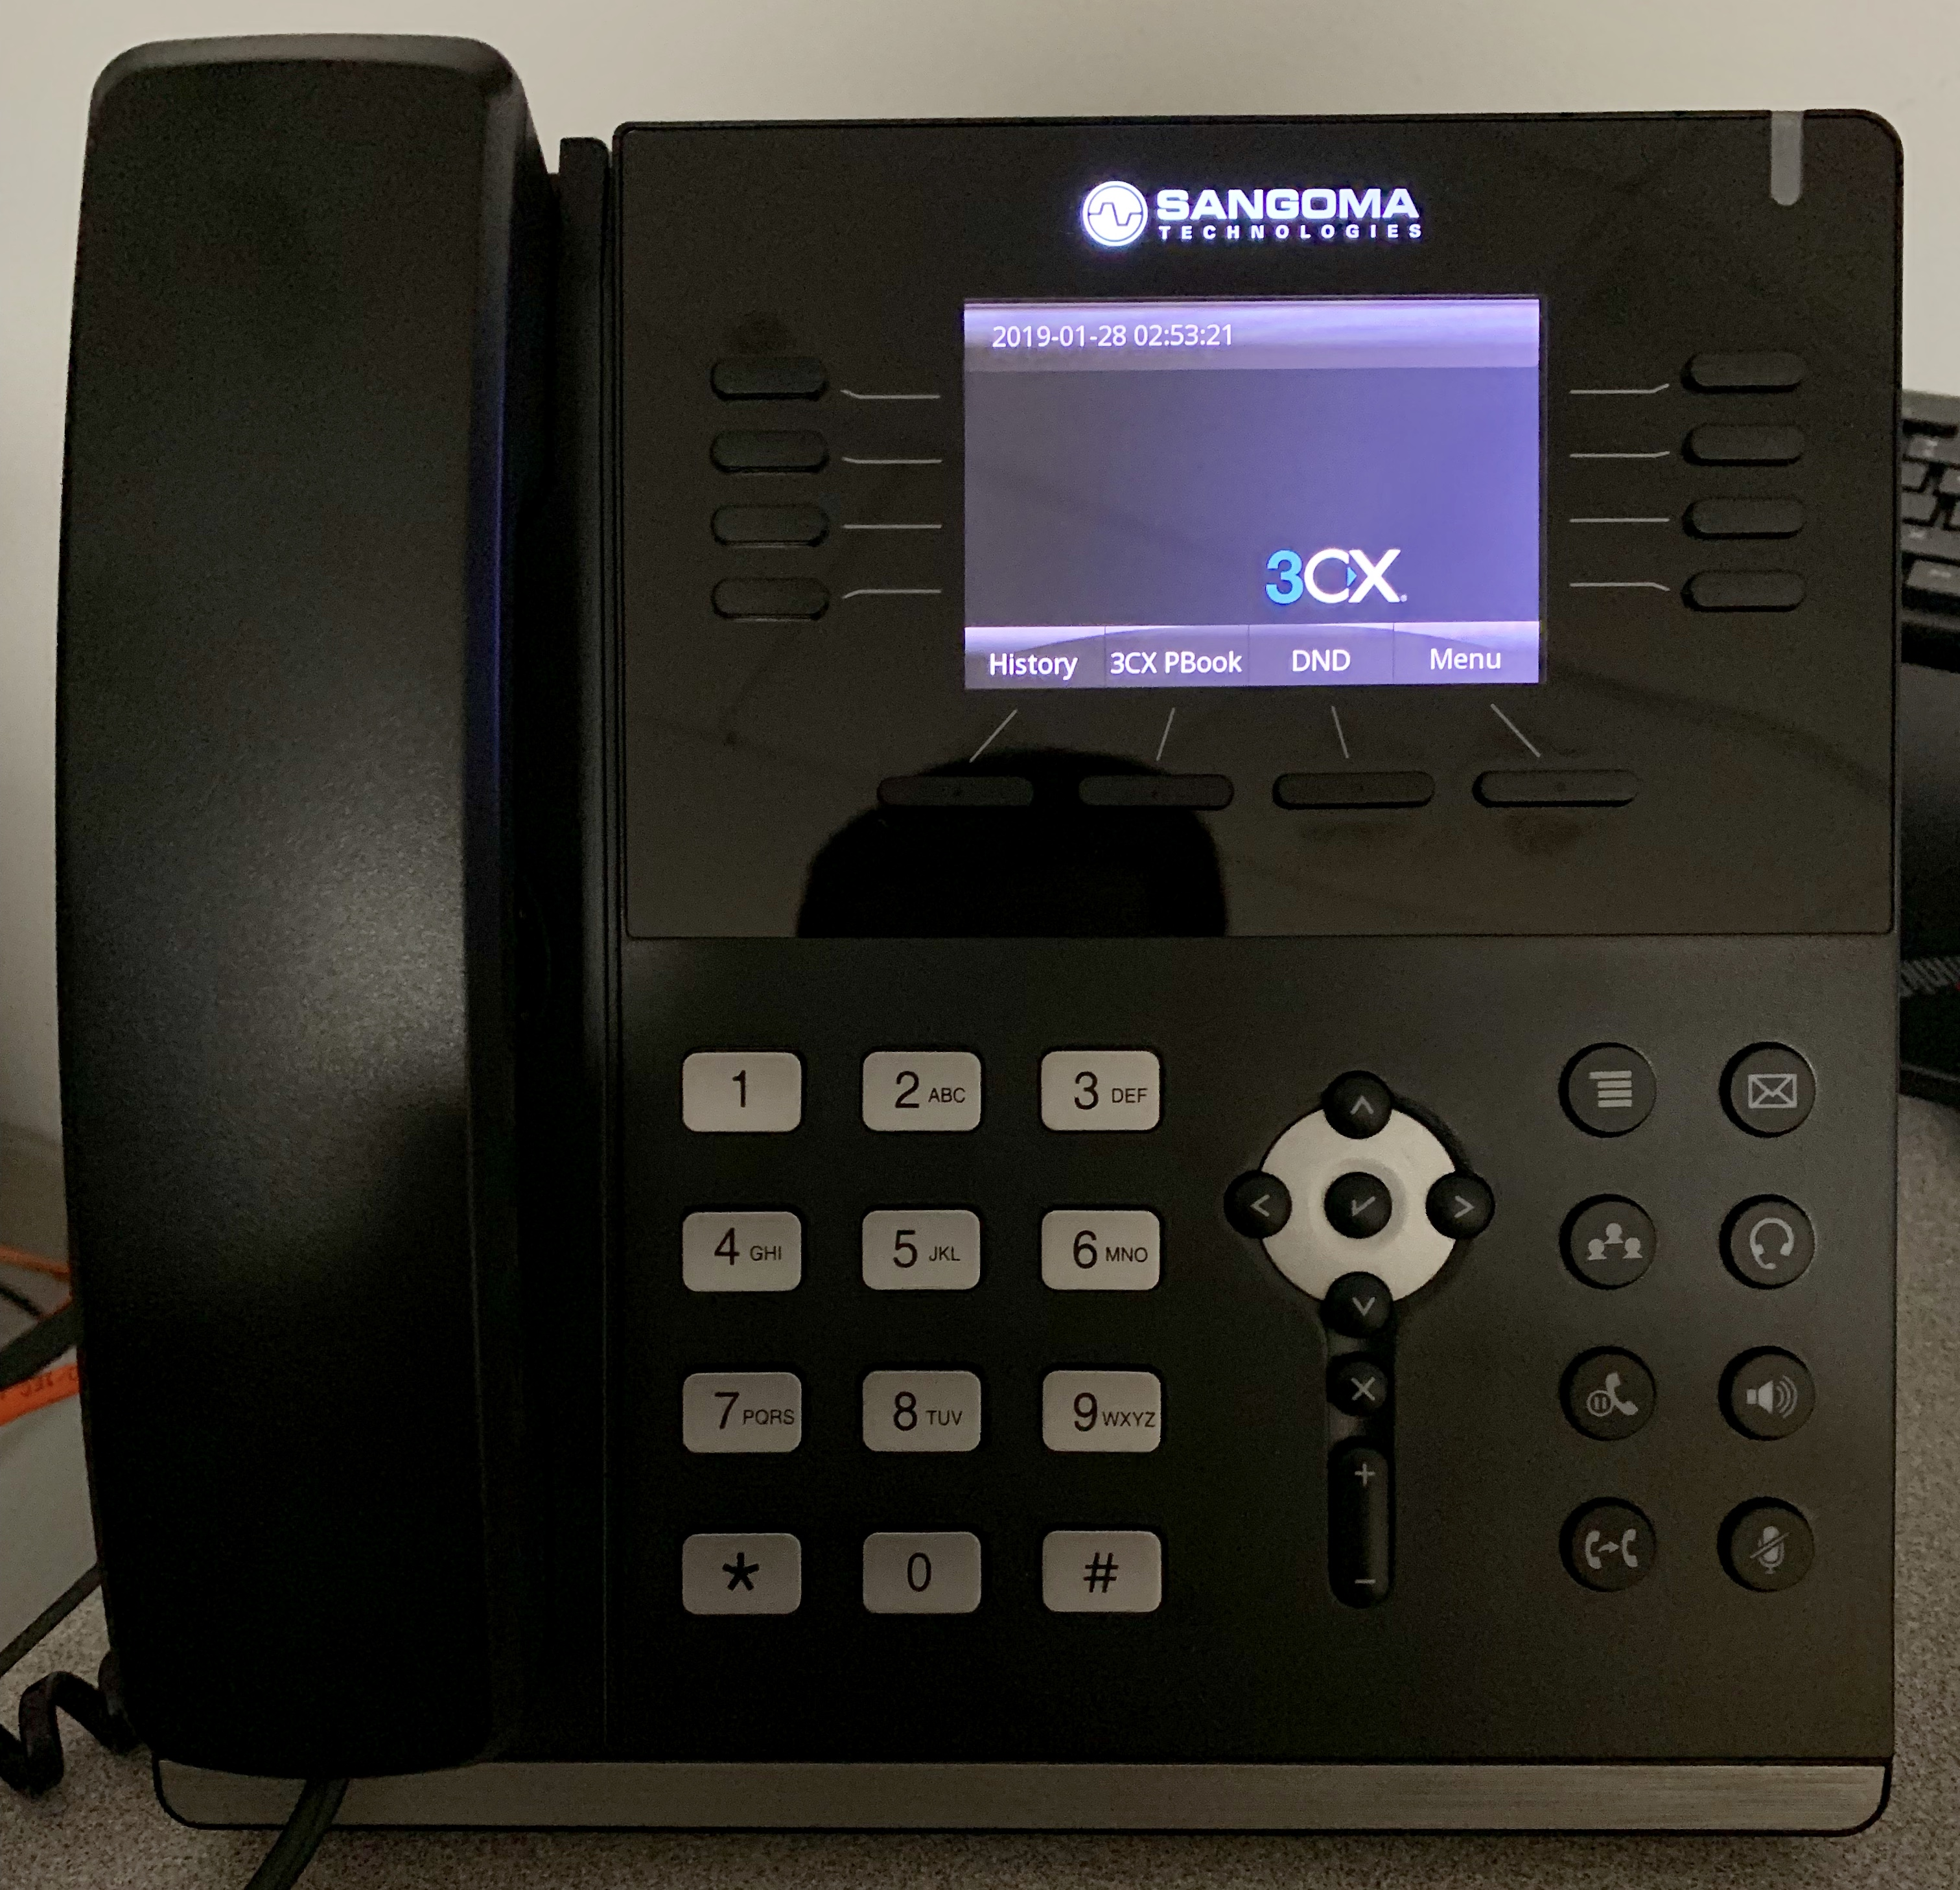 Looks like the S505 works with 3CX too - Sangoma Phones